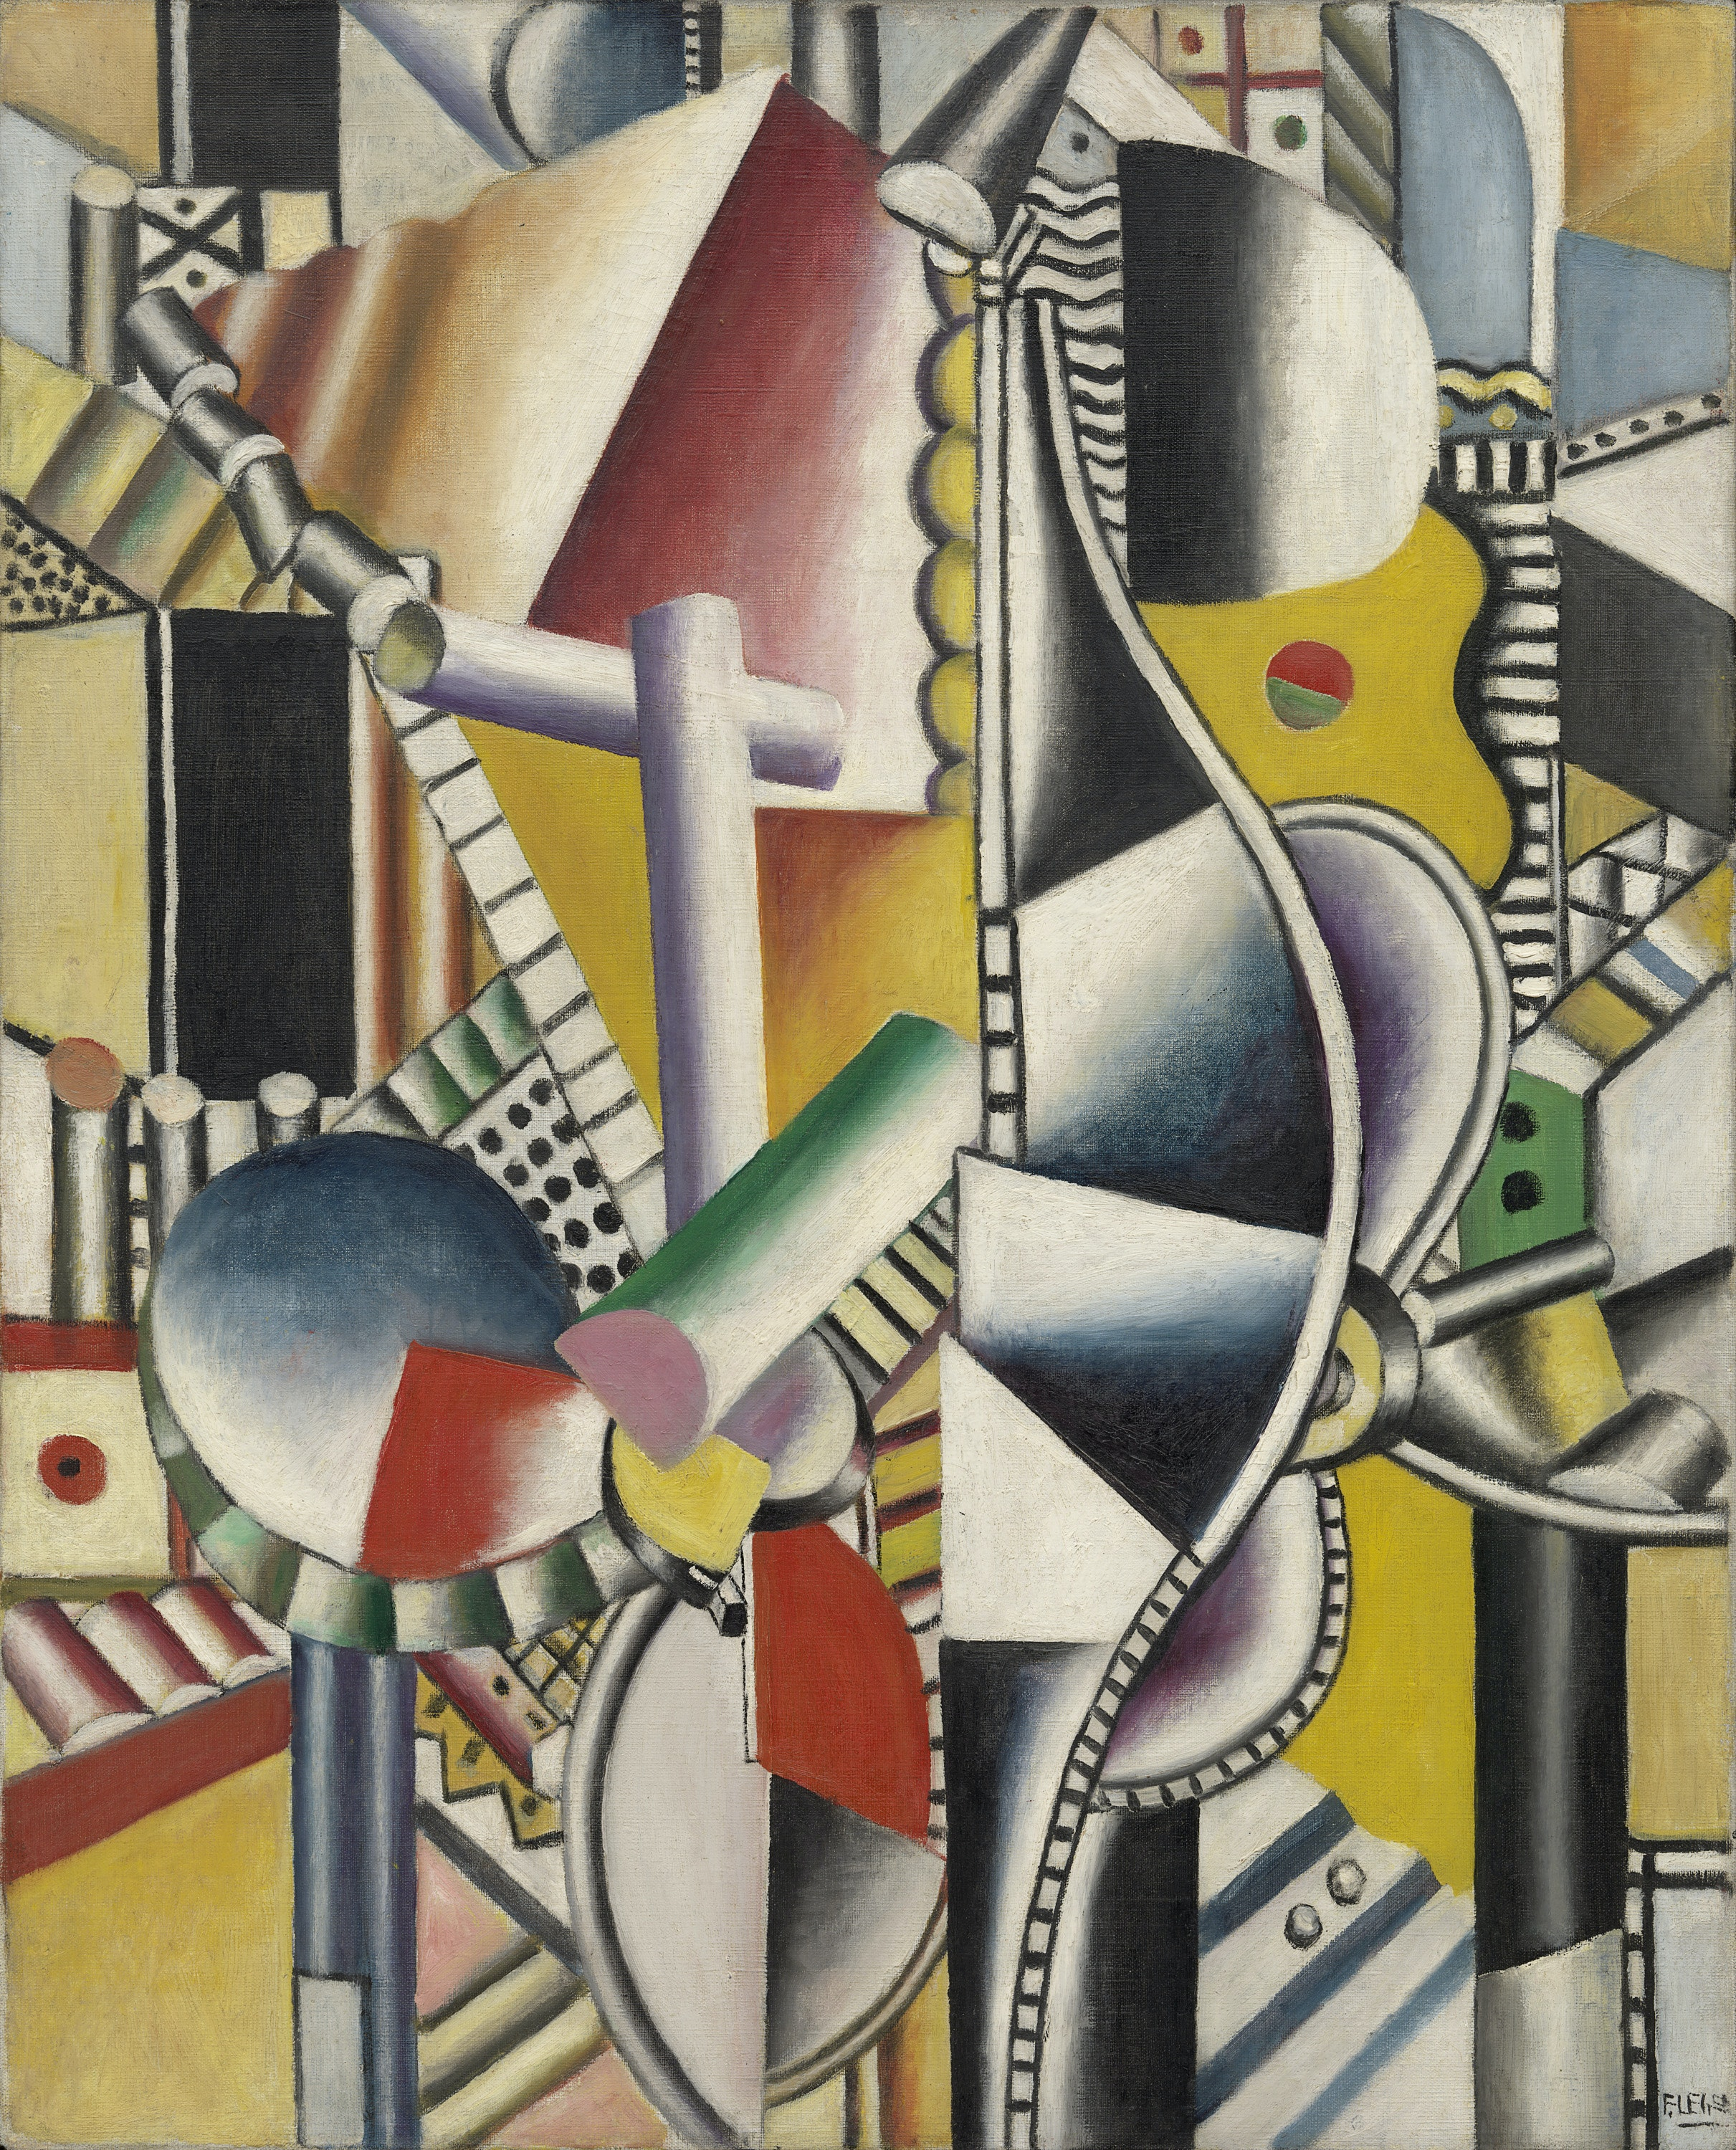 MoMA at NGV is a landmark exhibition – rich, dazzling and profoundly visually exciting